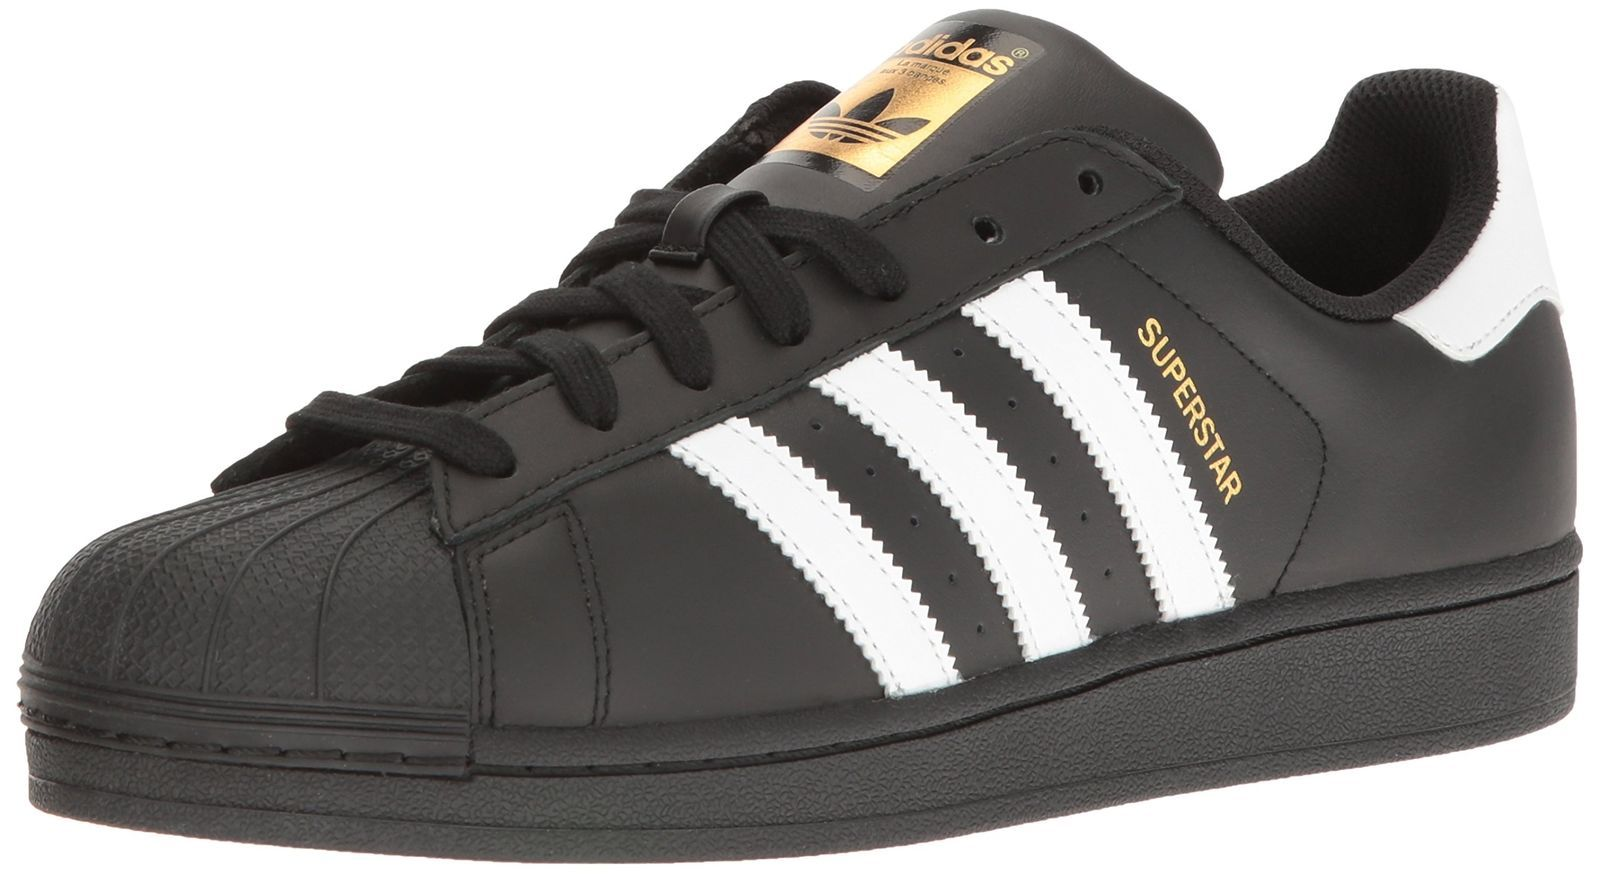 Details about adidas Originals Men's Superstar Sneaker GOLD